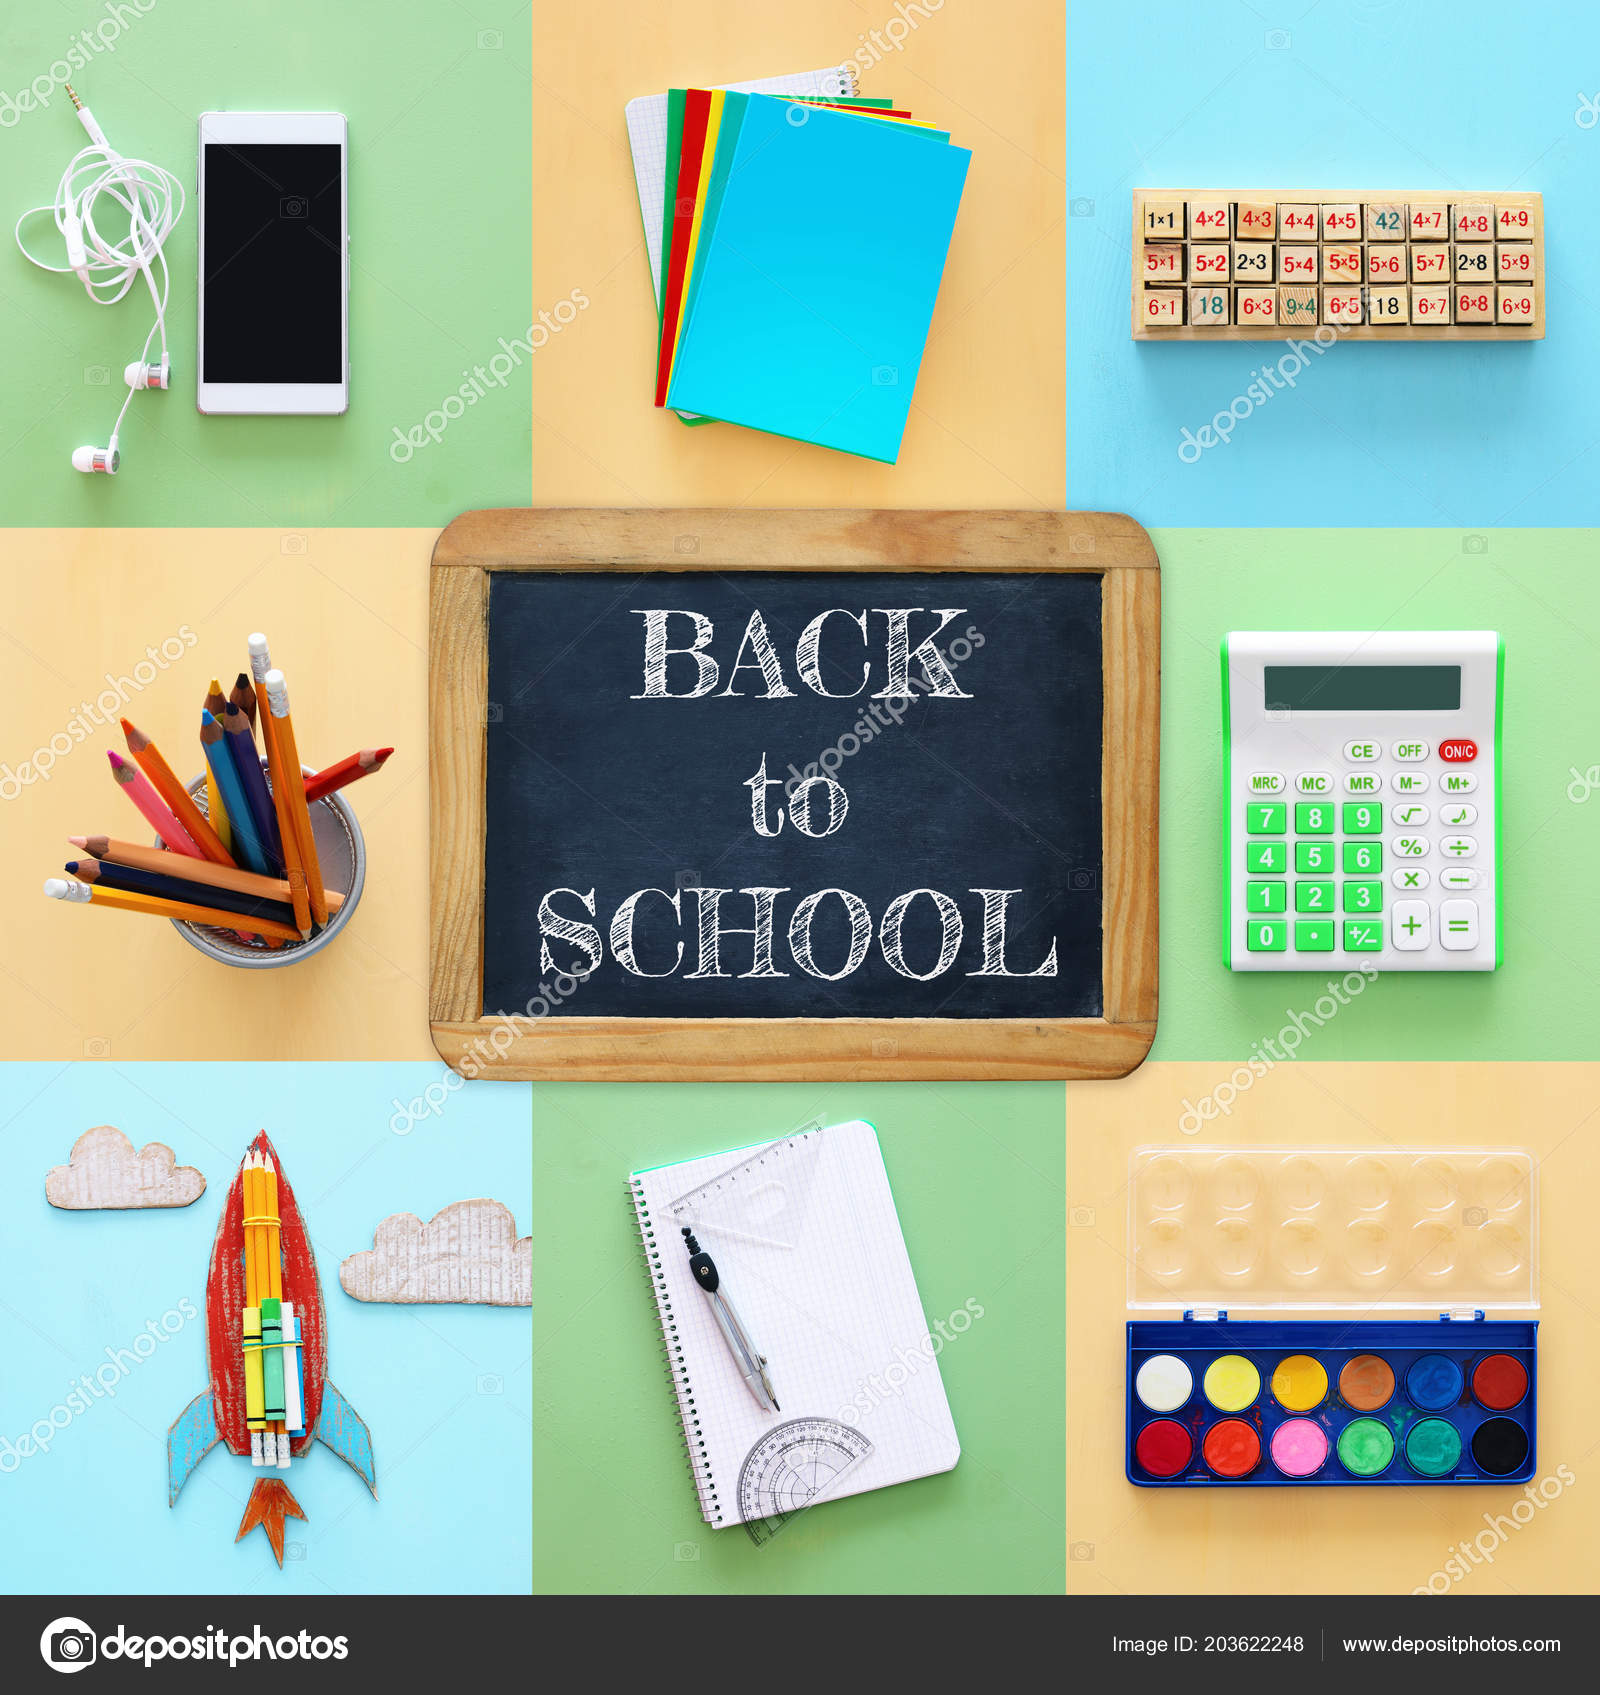 Back School Collage Concept School Objects Supply Classroom